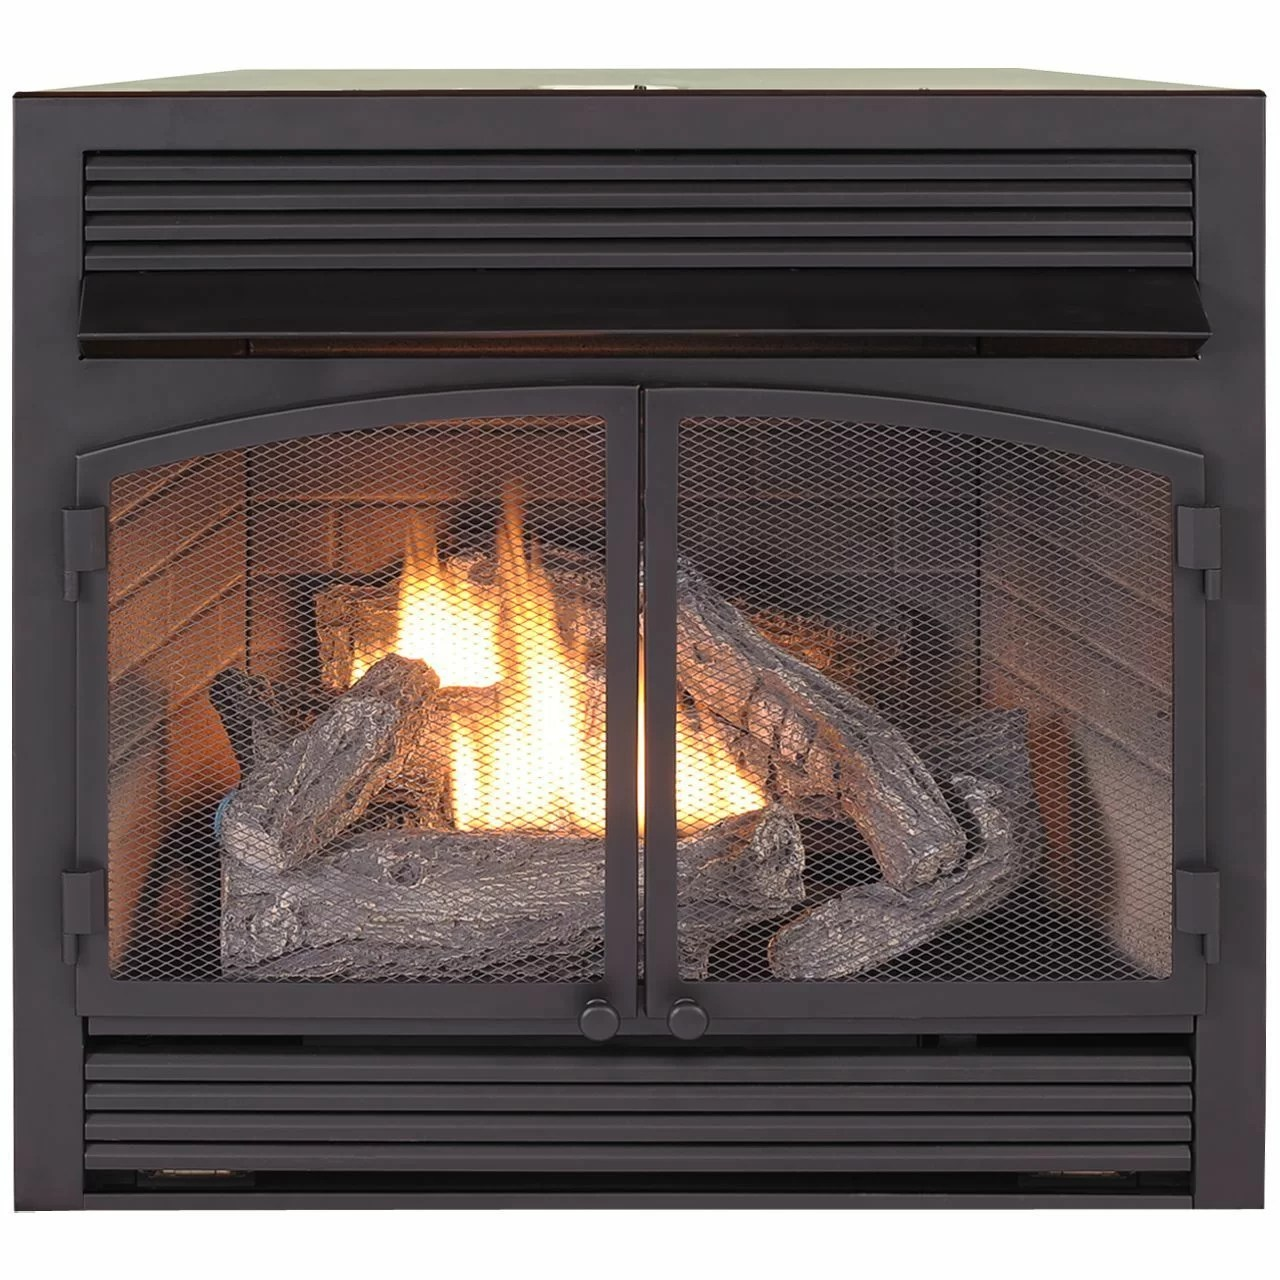 Free Fireplace Insert Vent Free Recessed Natural Gas Propane Fireplace Insert